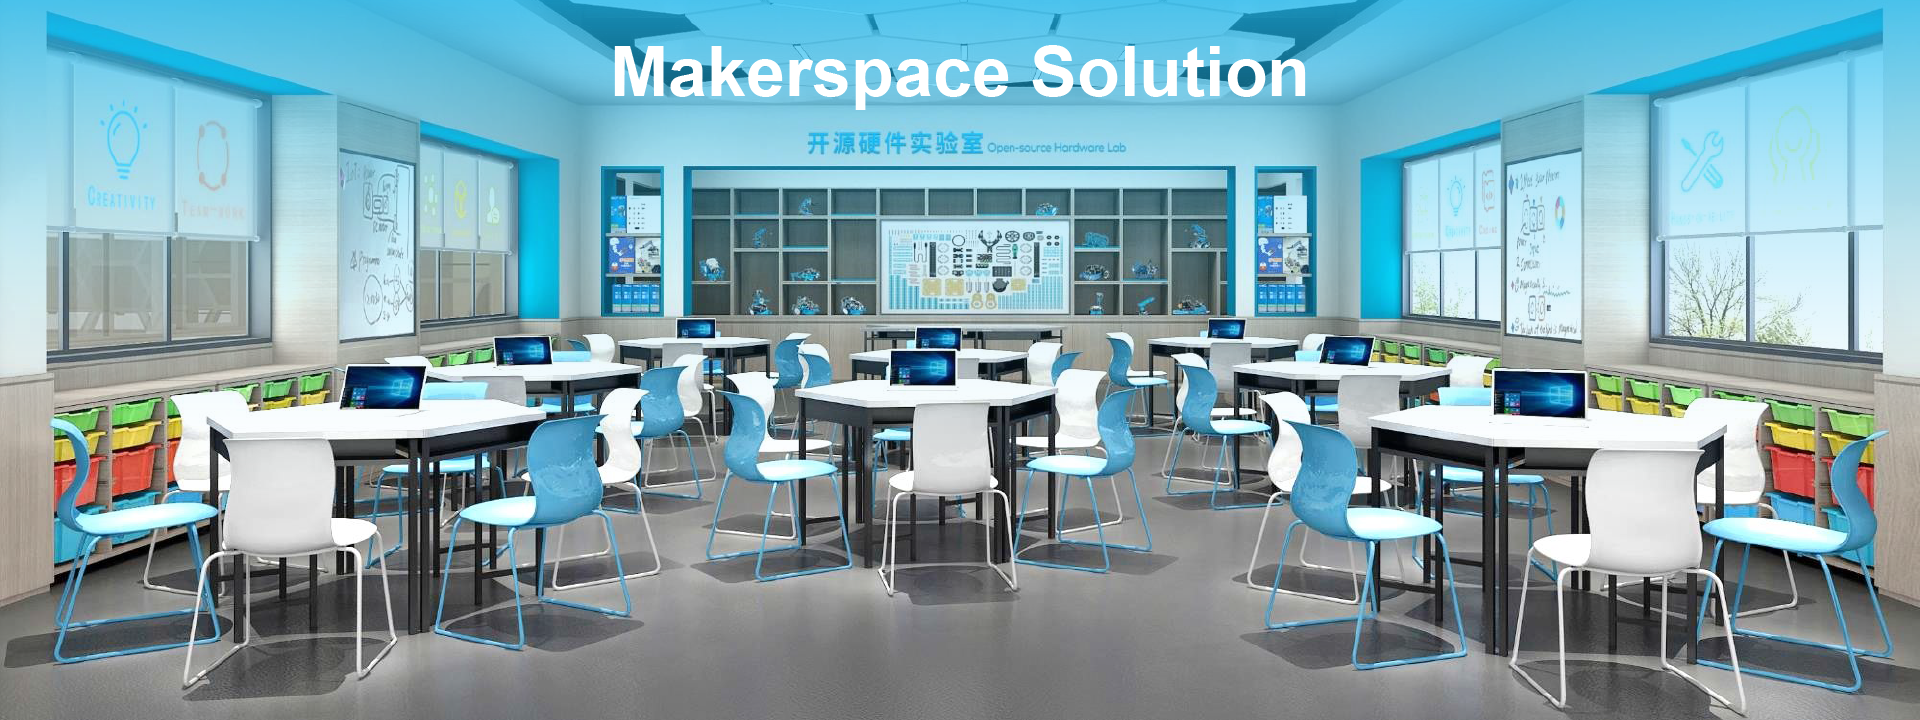 banner_makerspace